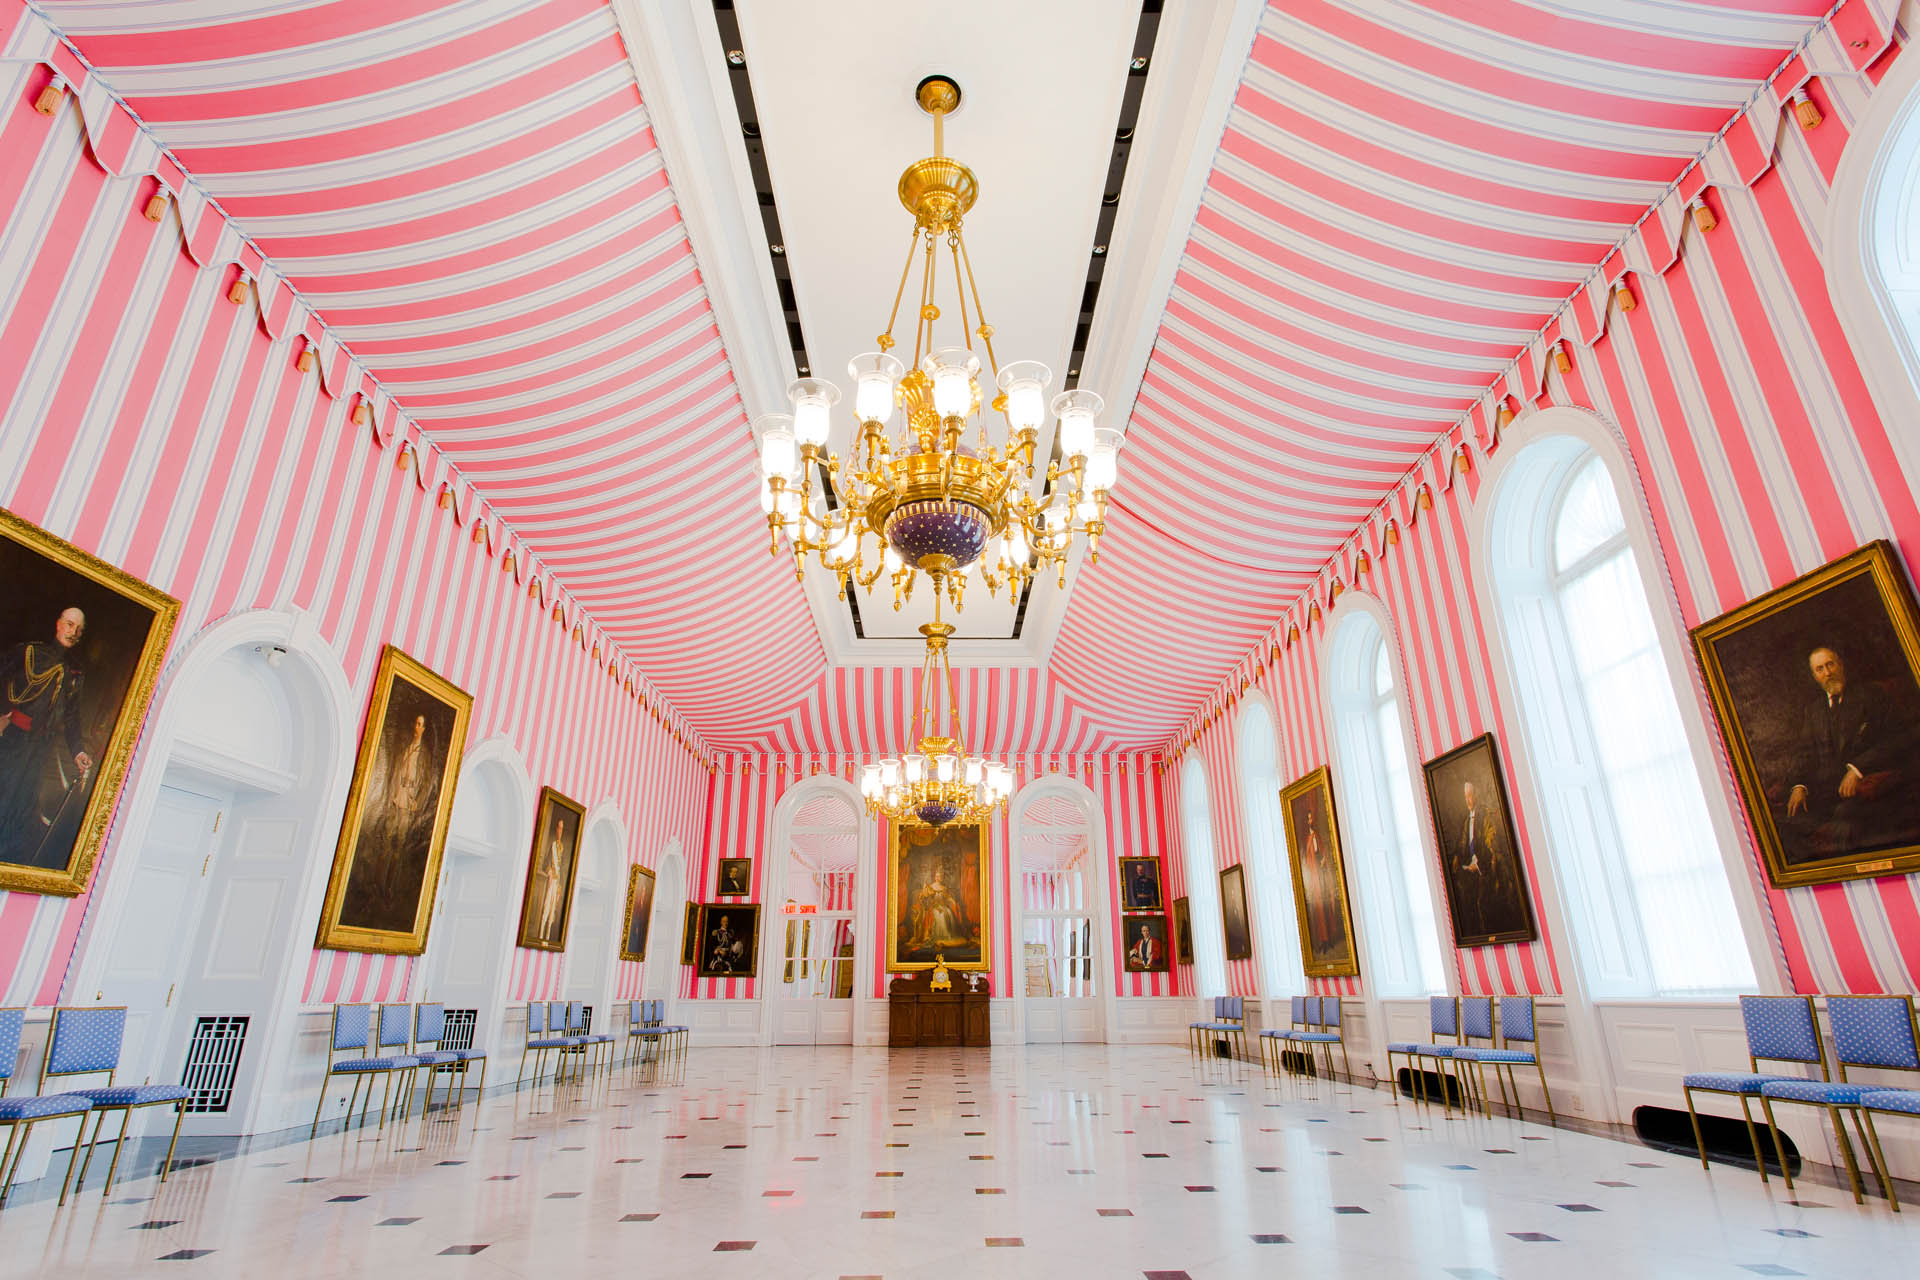 Tent Room at Rideau Hall in Ottawa